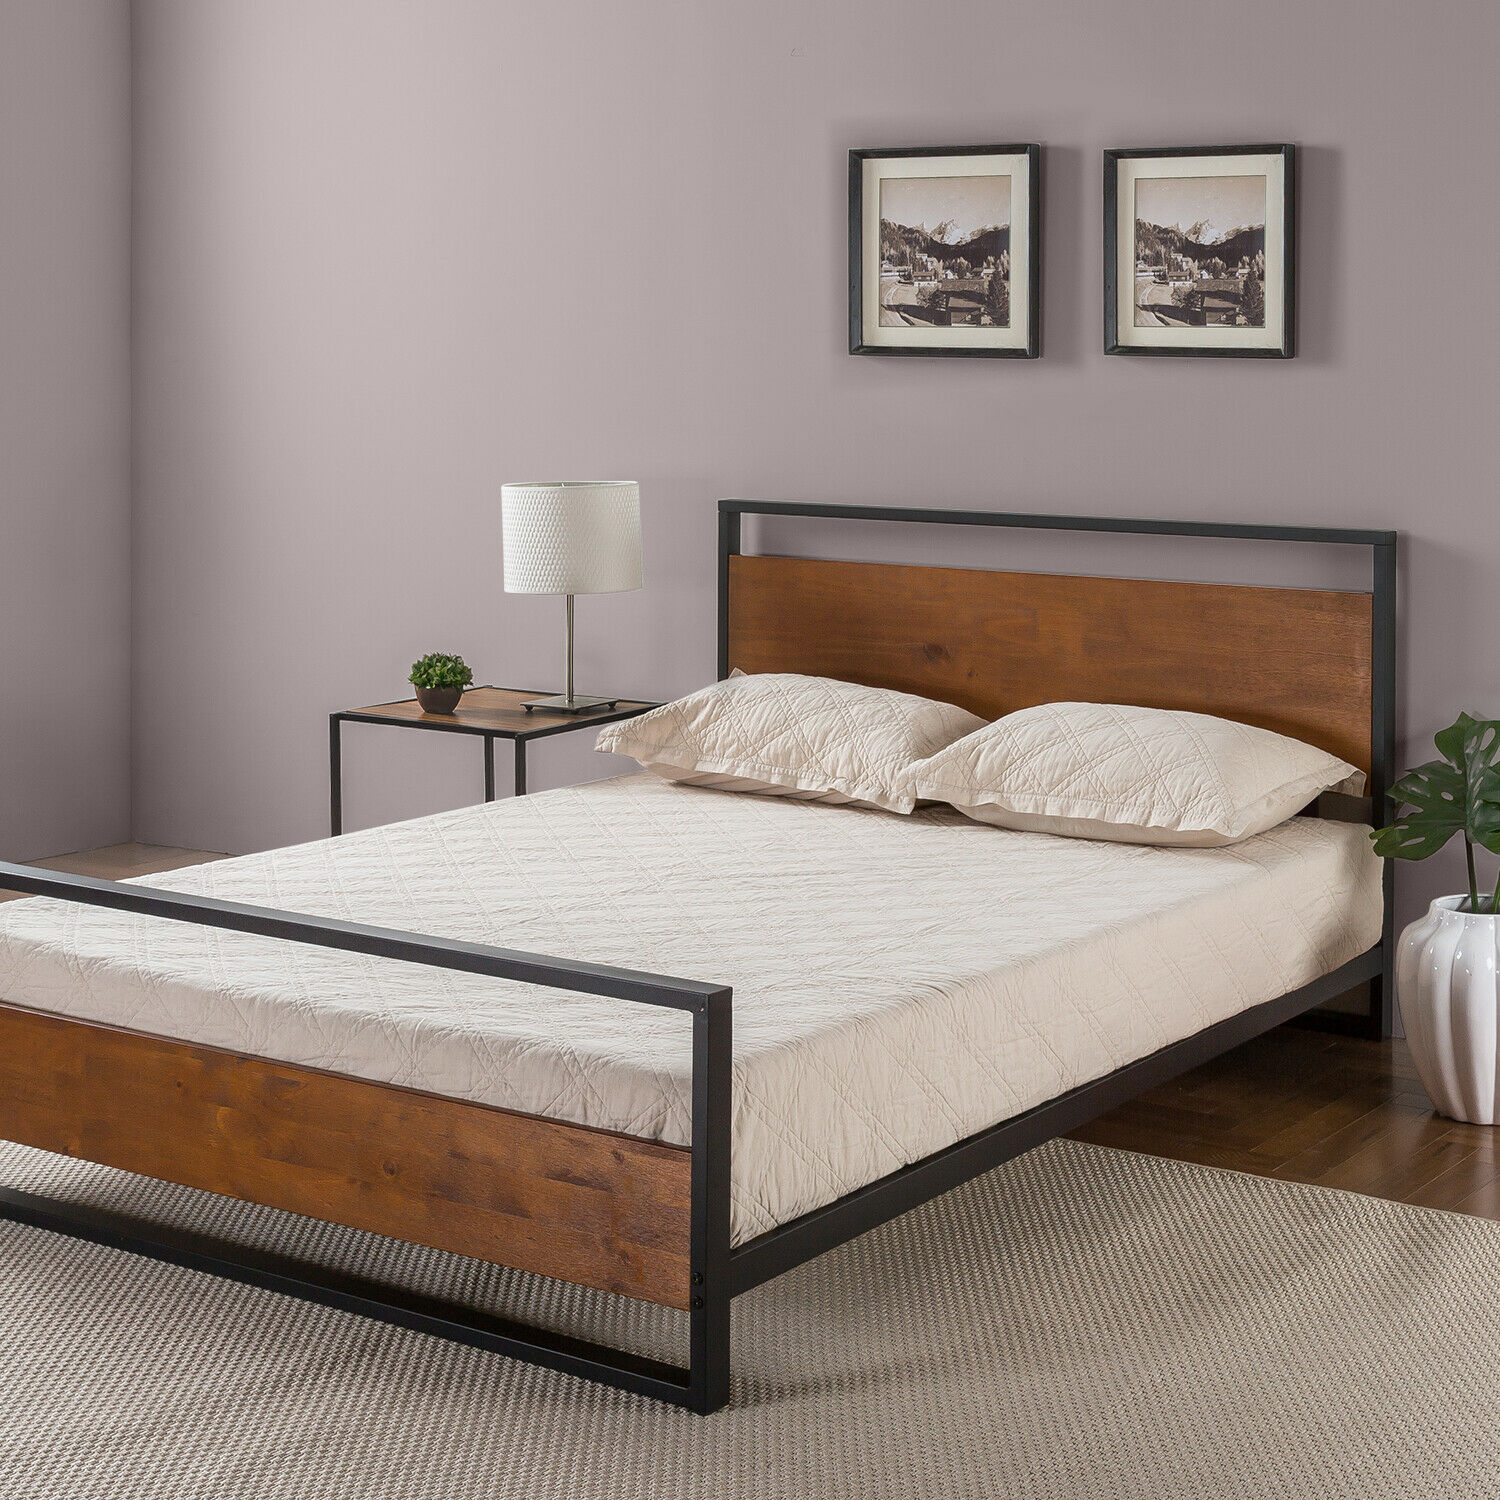 Picture of: Zinus Suzanne 6 Inch Platform Bed Without Headboard King For Sale Online Ebay